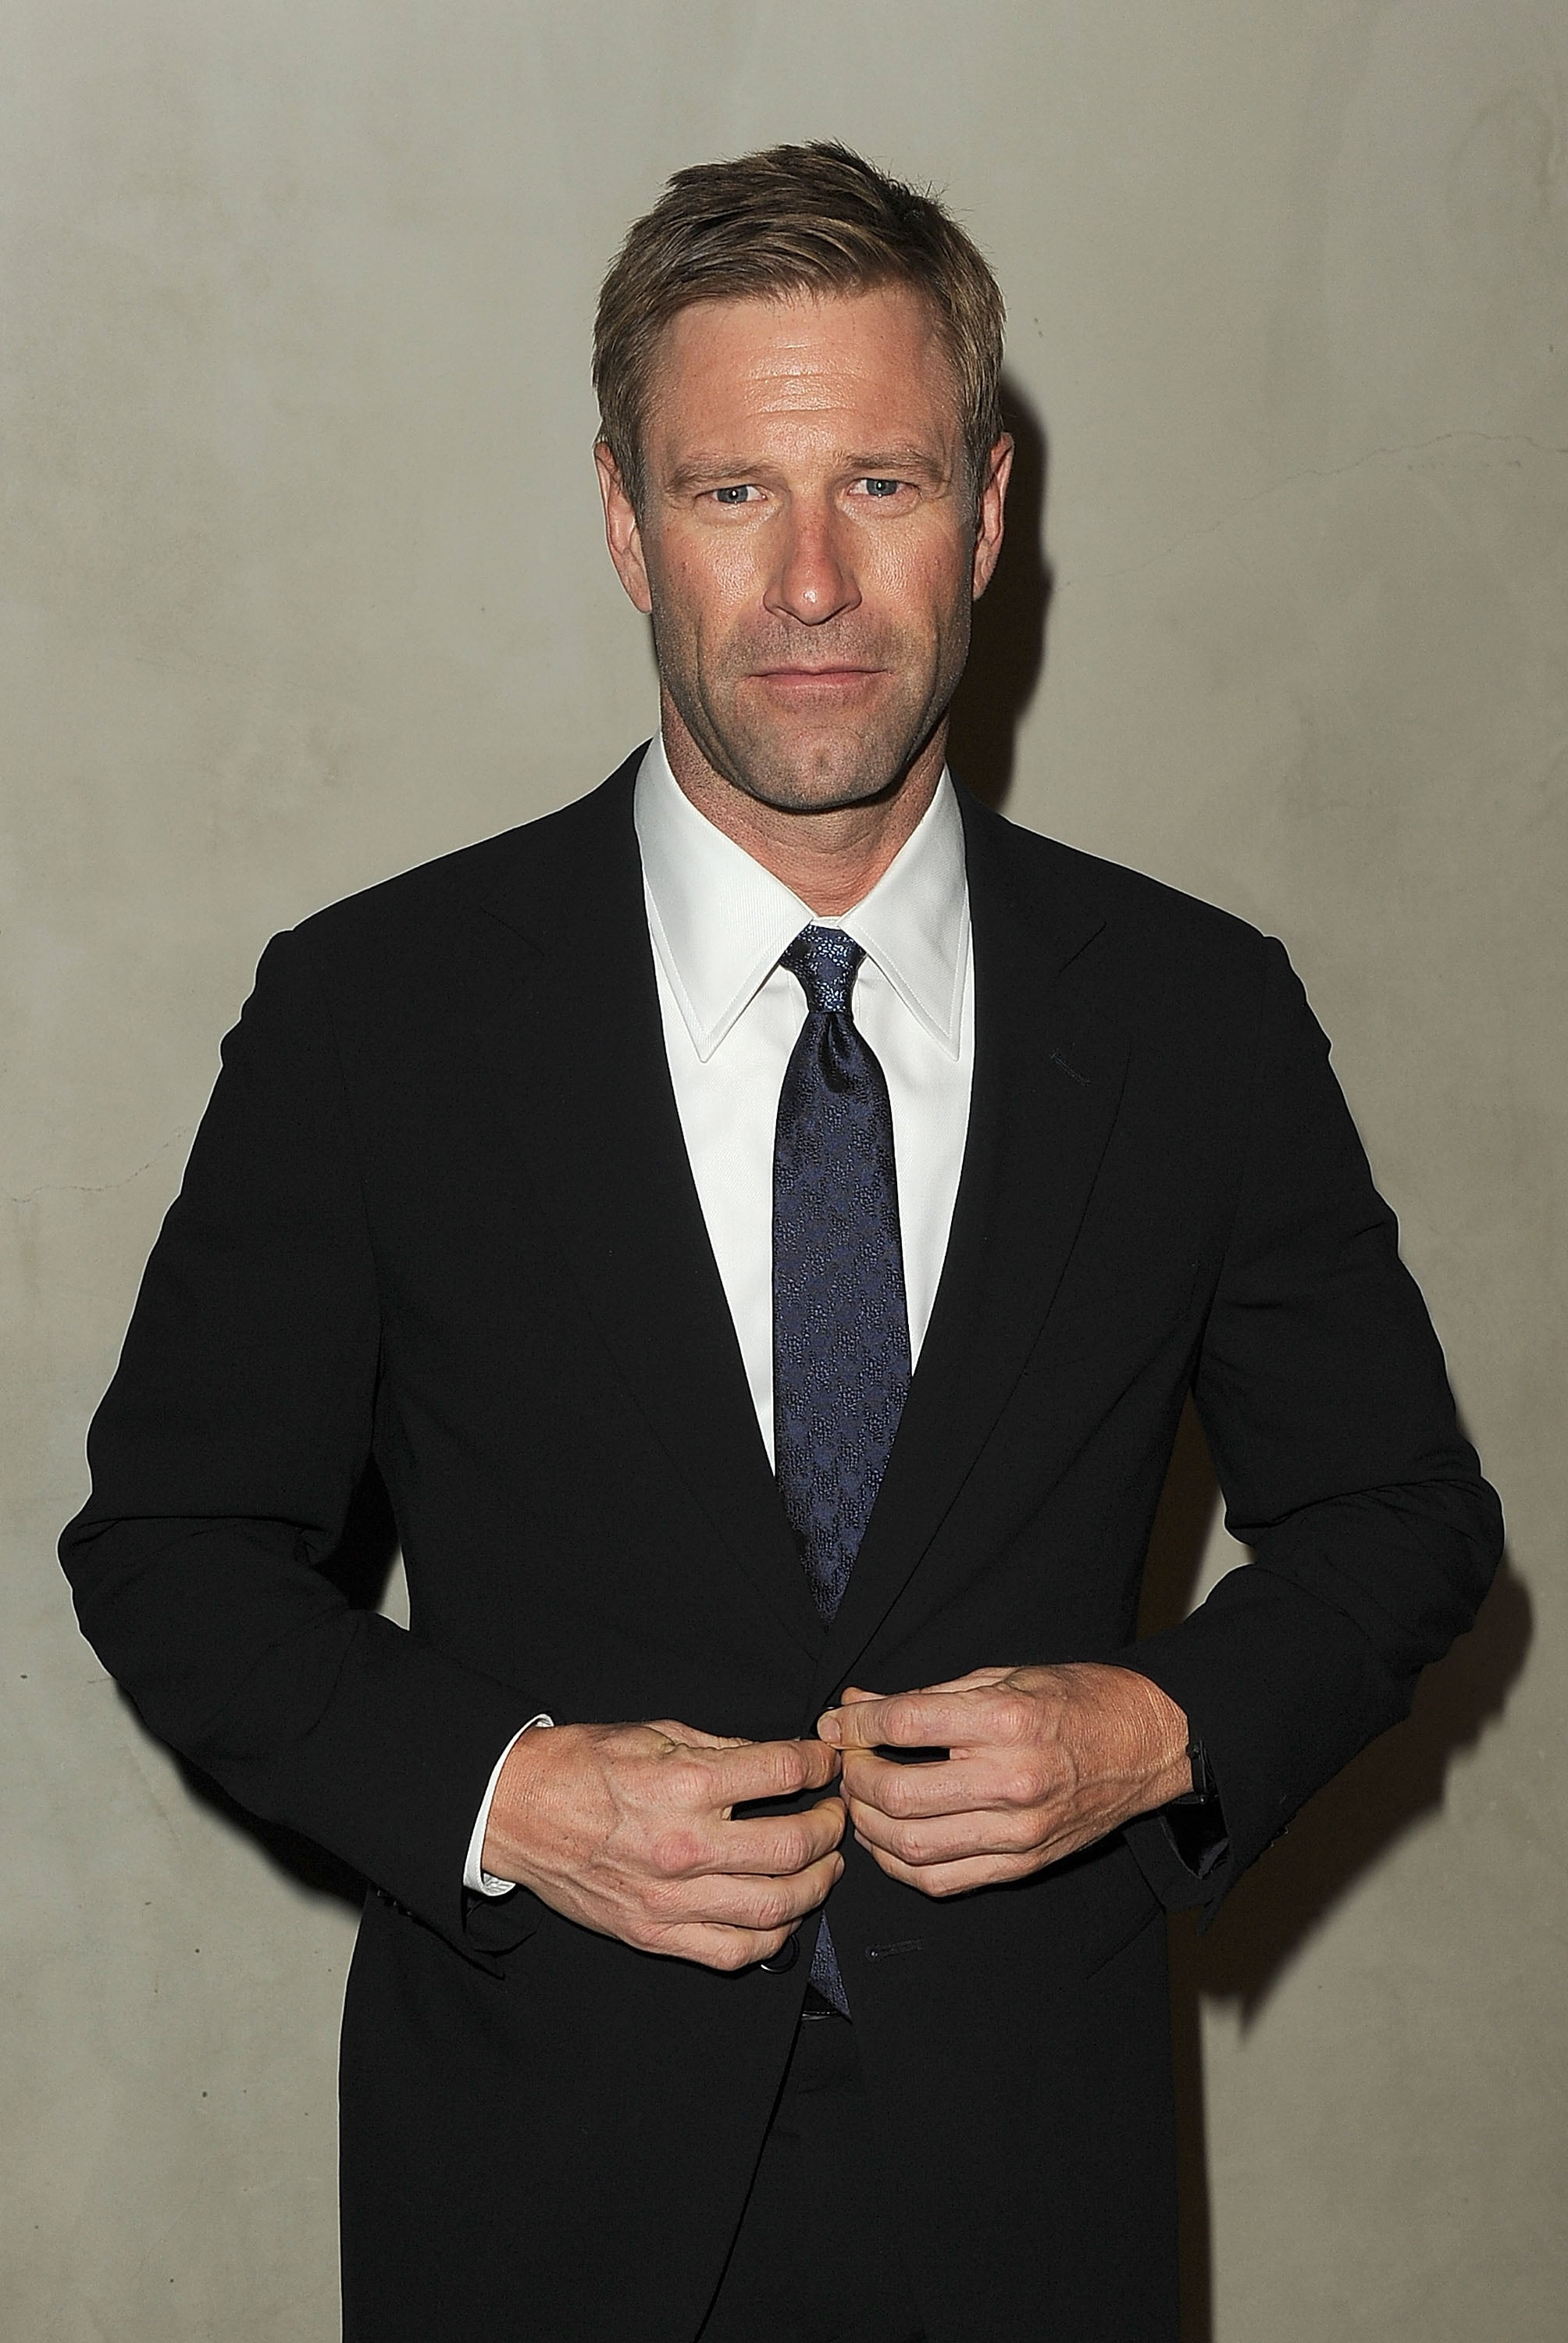 Aaron Eckhart made an appearance at a dinner for Armani and Vanity Fair in LA.